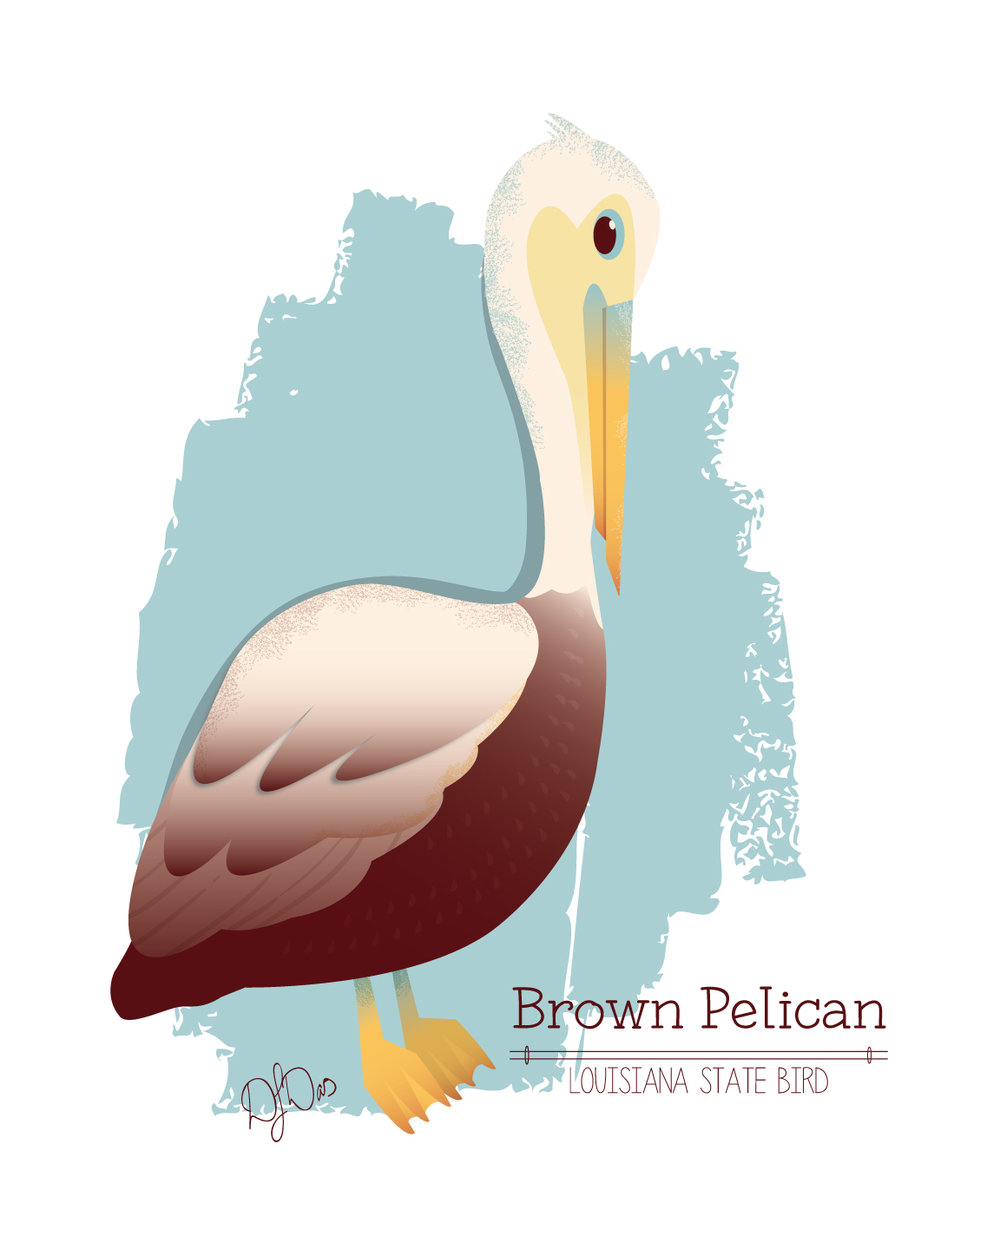 Brown_Pelican.jpg